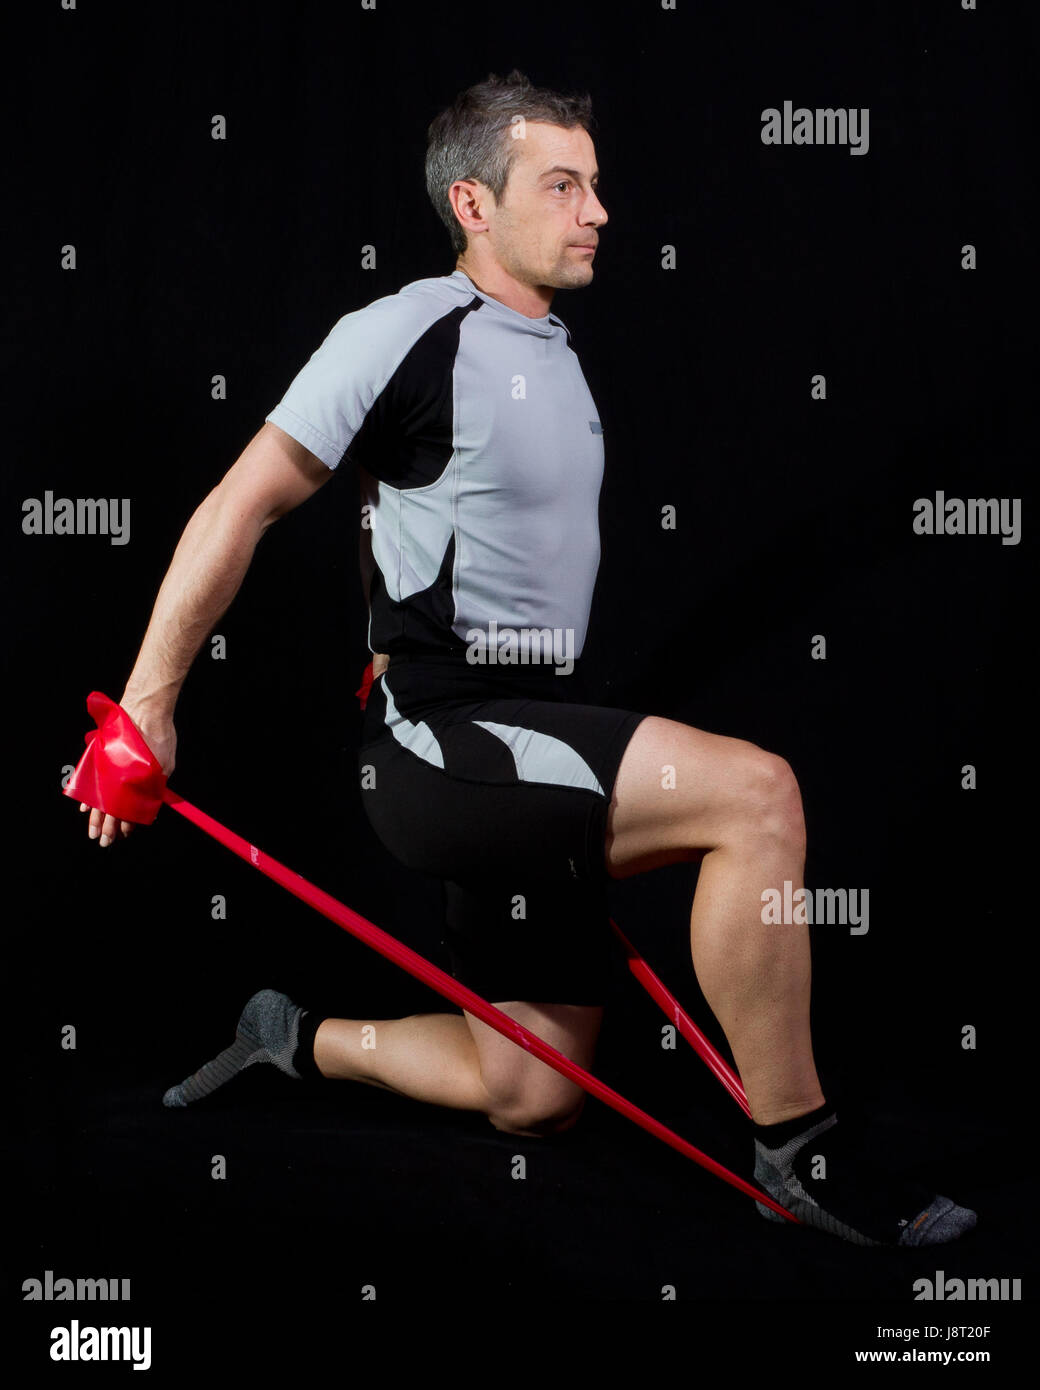 exercising with resistance band Stock Photo